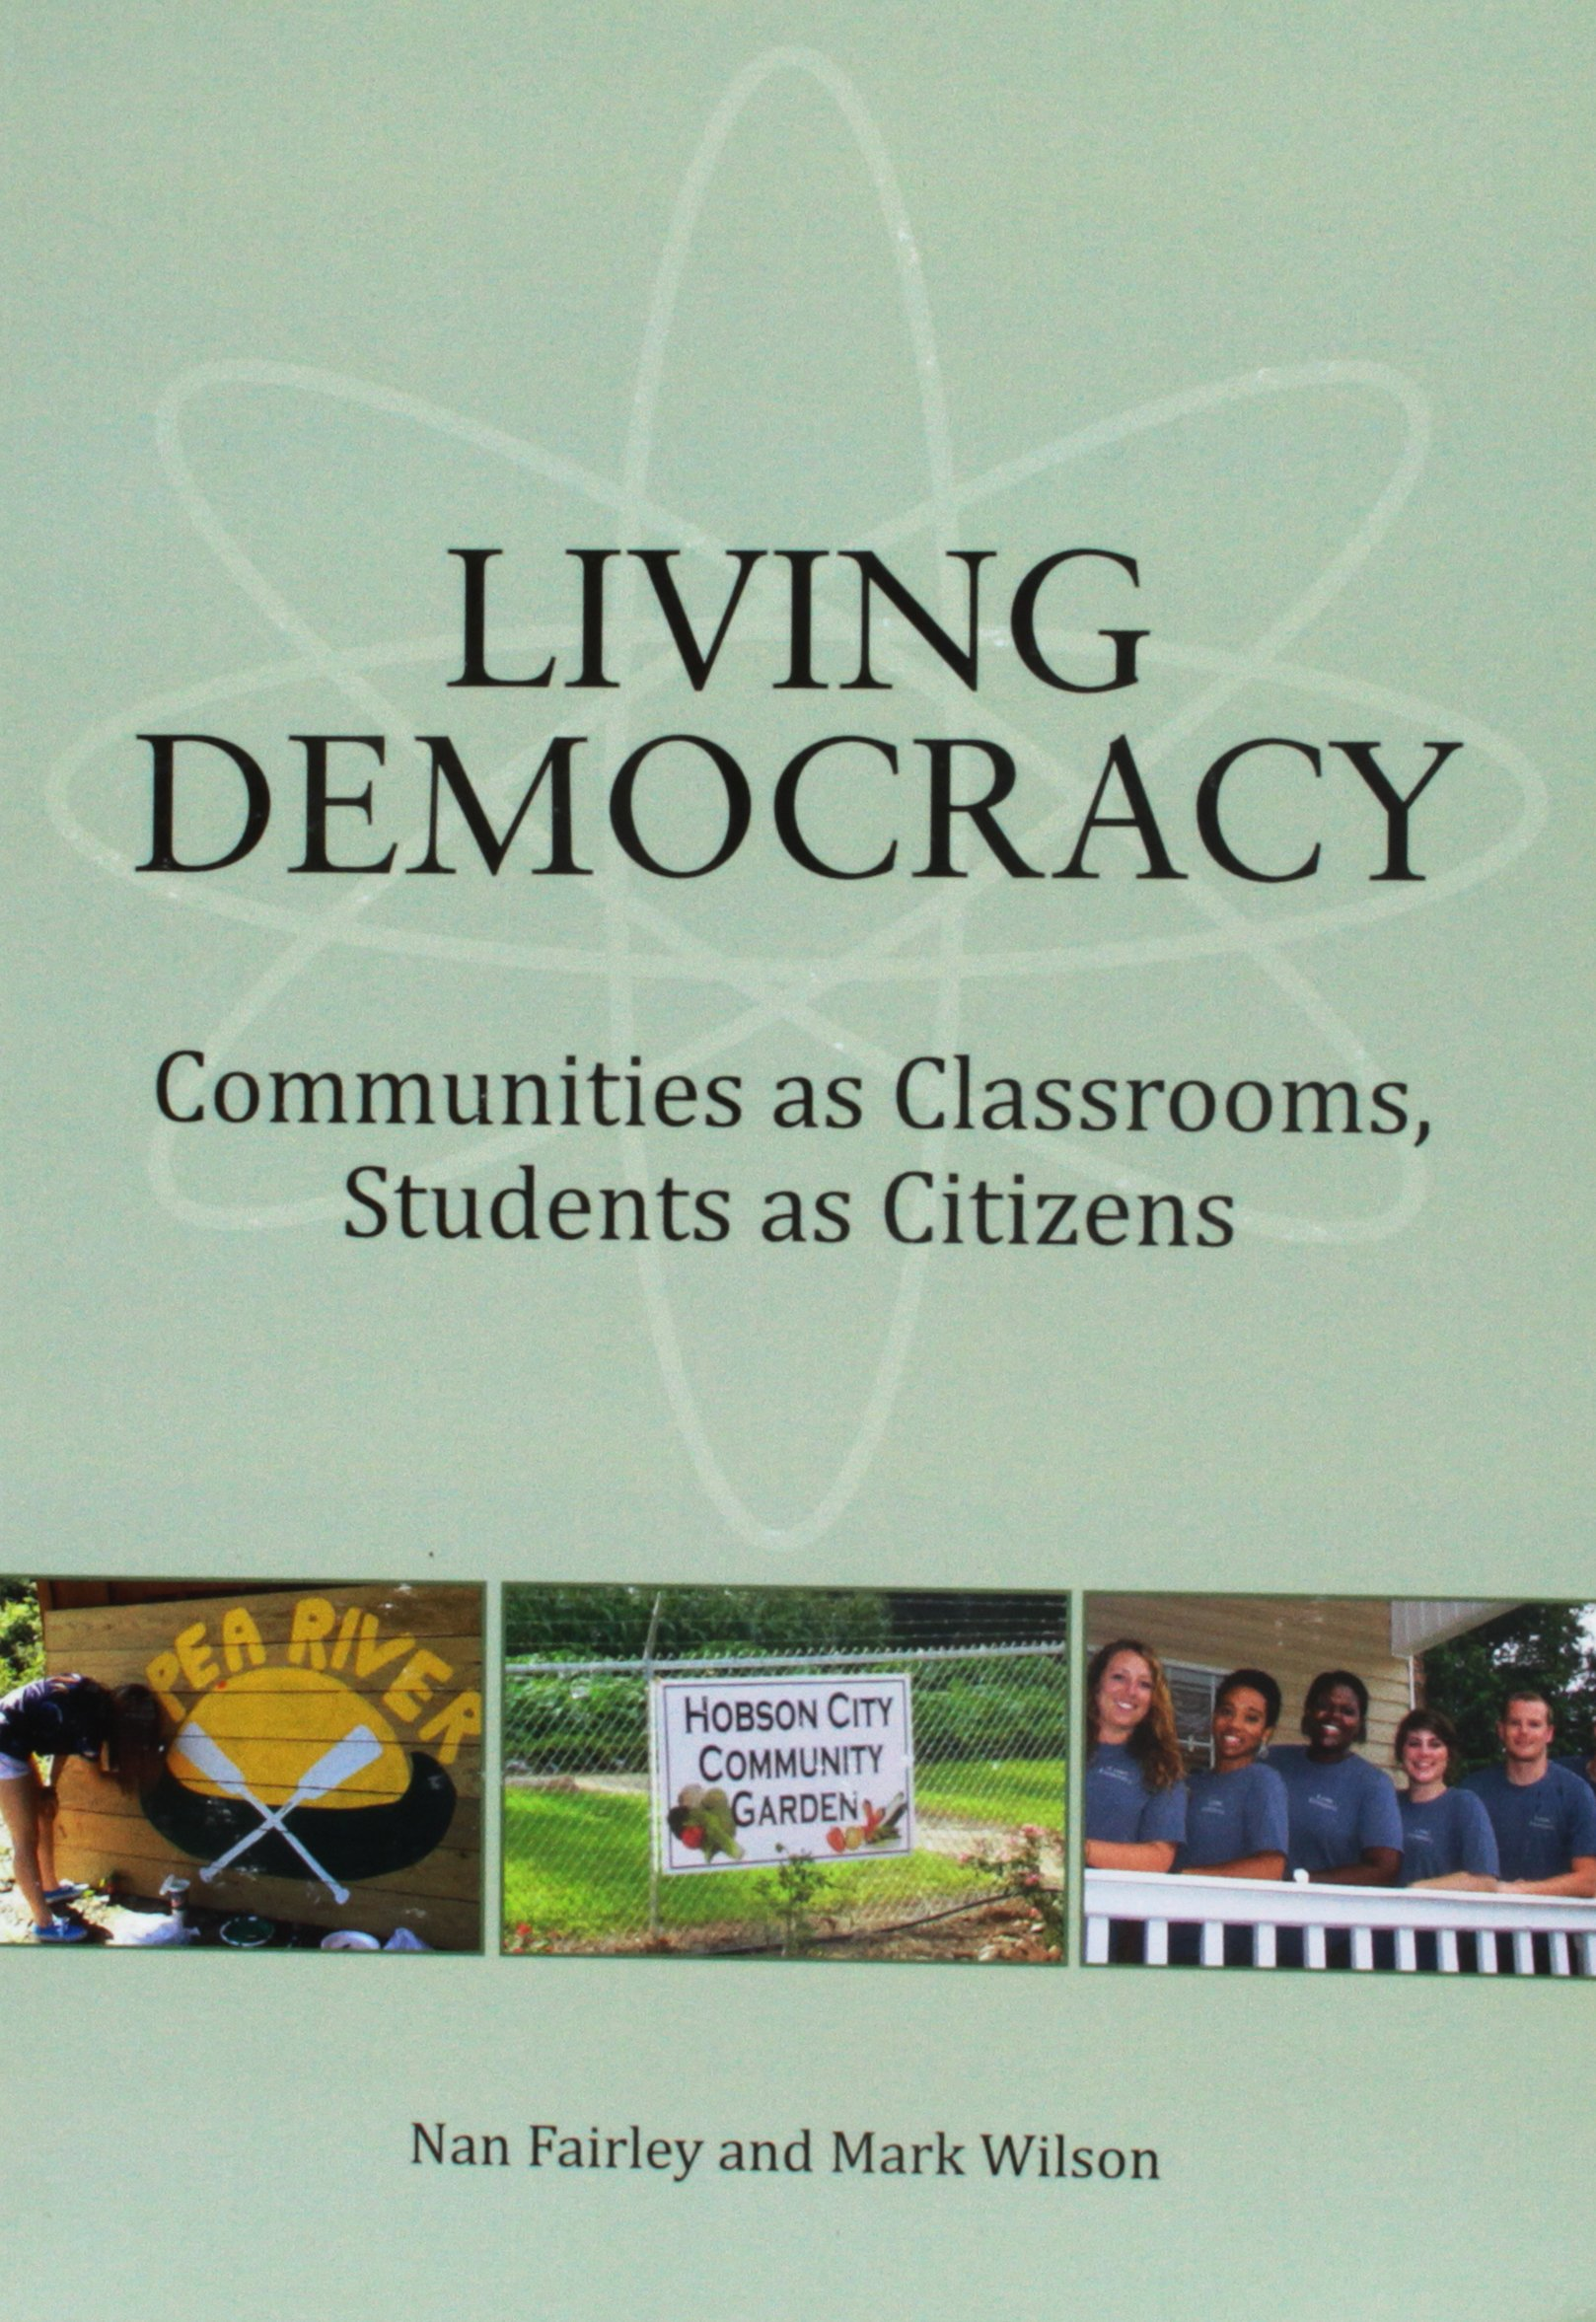 Living Democracy: Communities as Classrooms, Students as Citizens